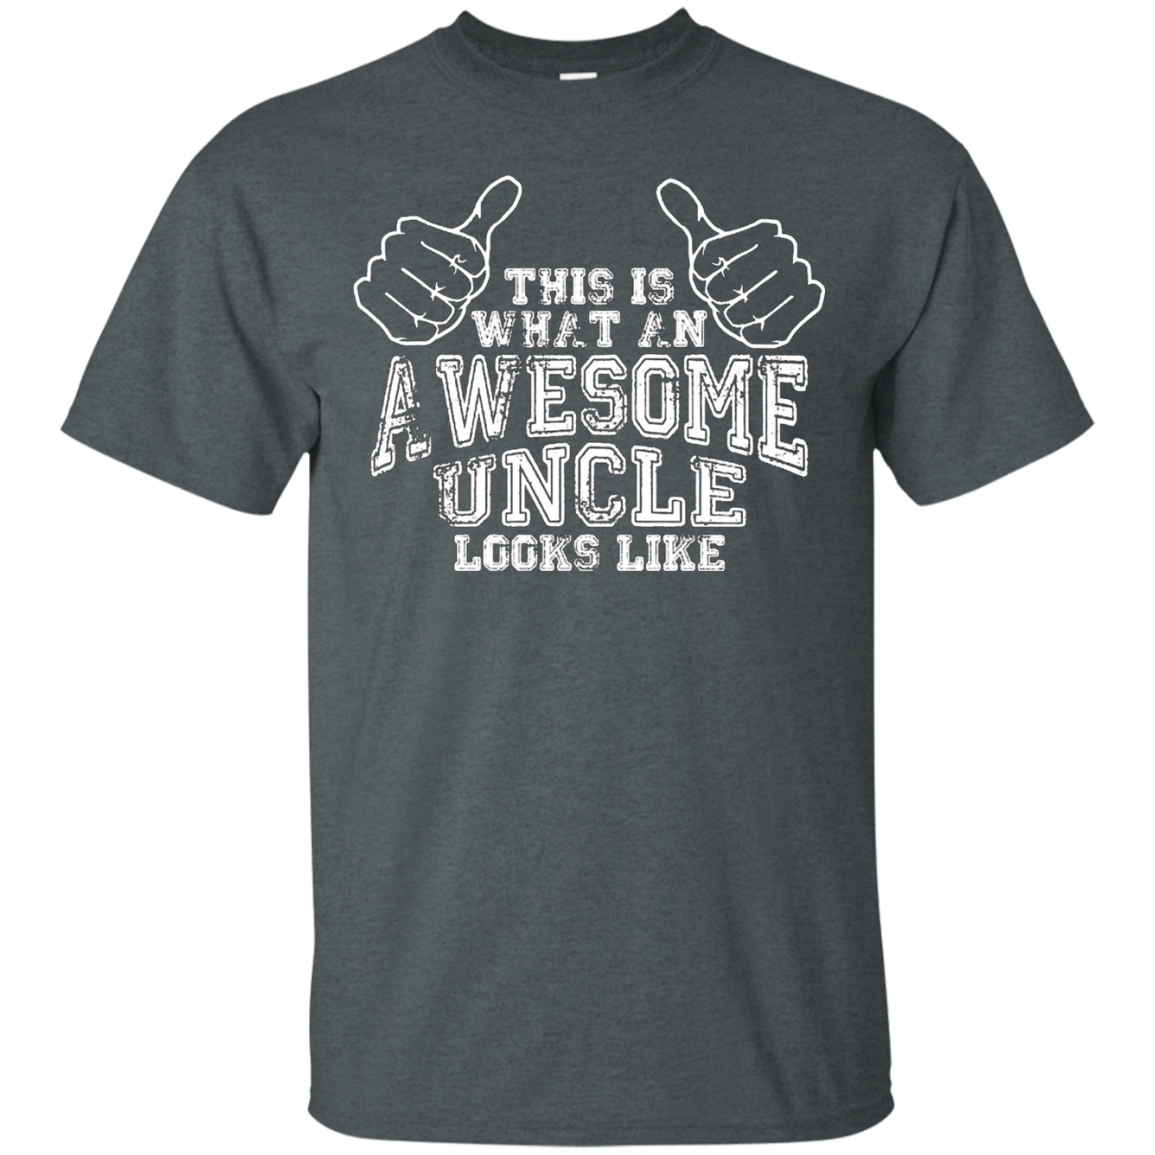 This Is What An Awesome Uncle Looks Like T Shirt slogan funn - T-Shirt